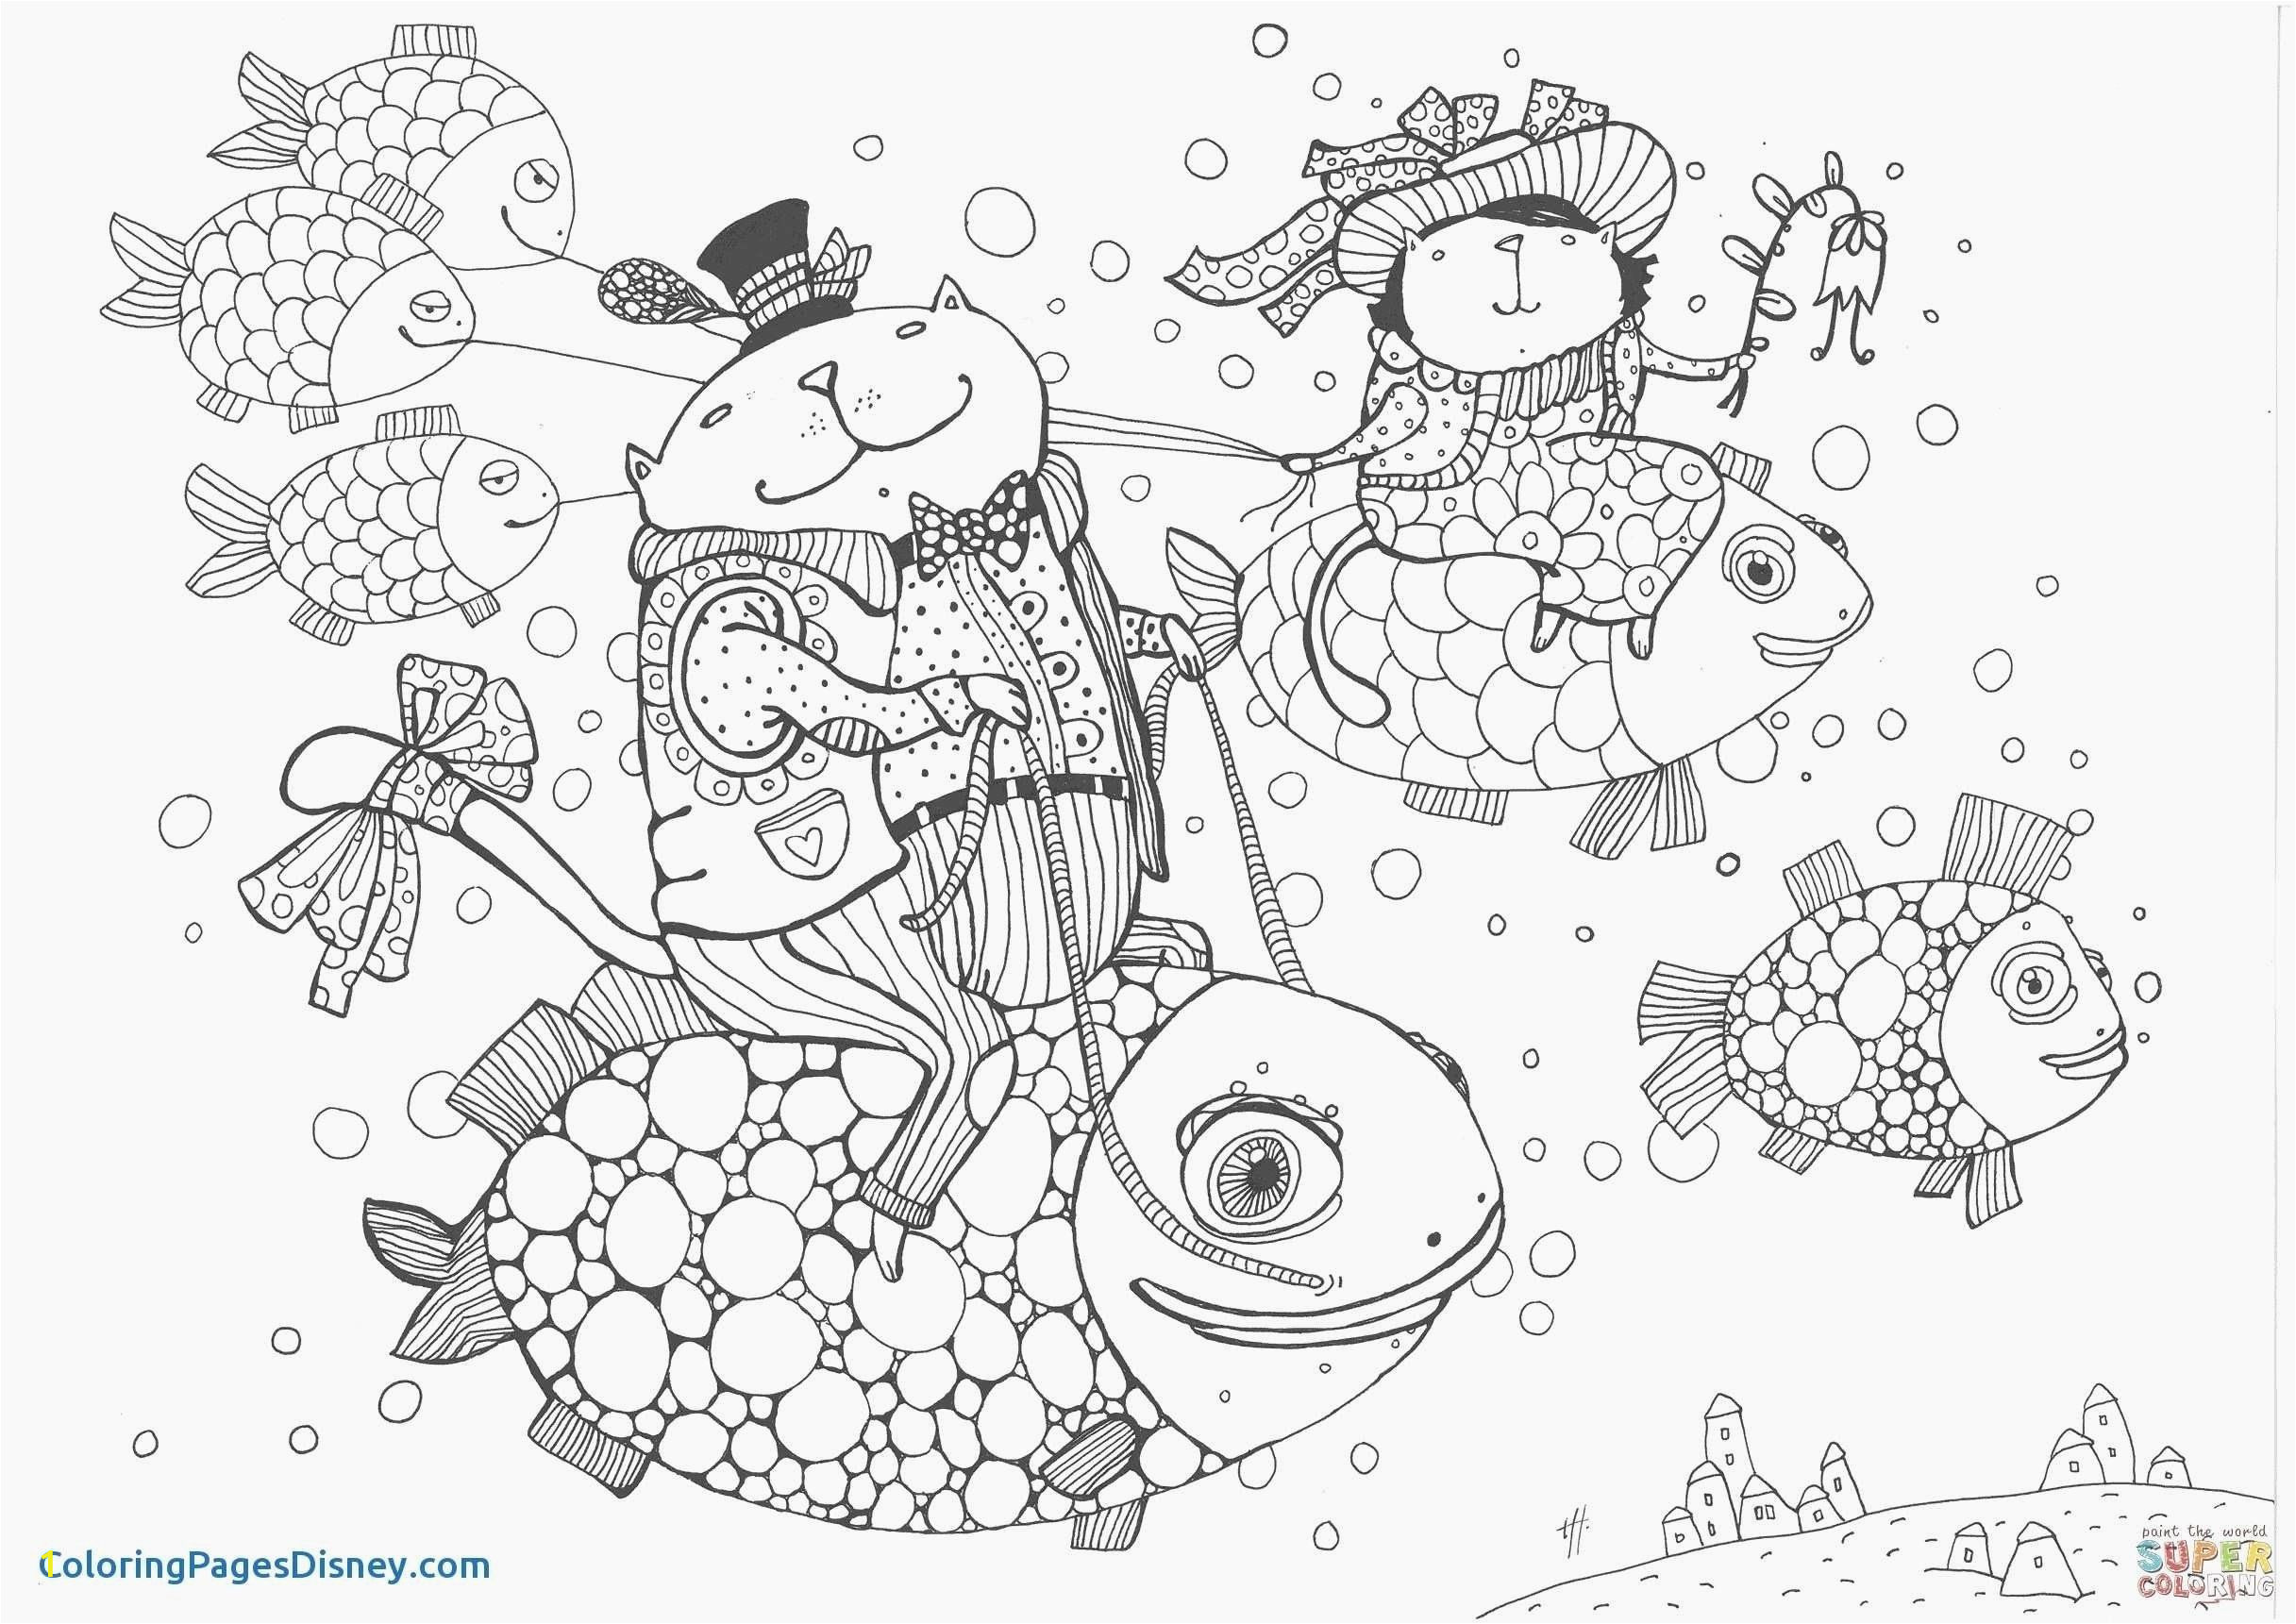 Coloring Pages Of Walt Disney World Thanksgiving Coloring Pages Free Printable Awesome Coloring